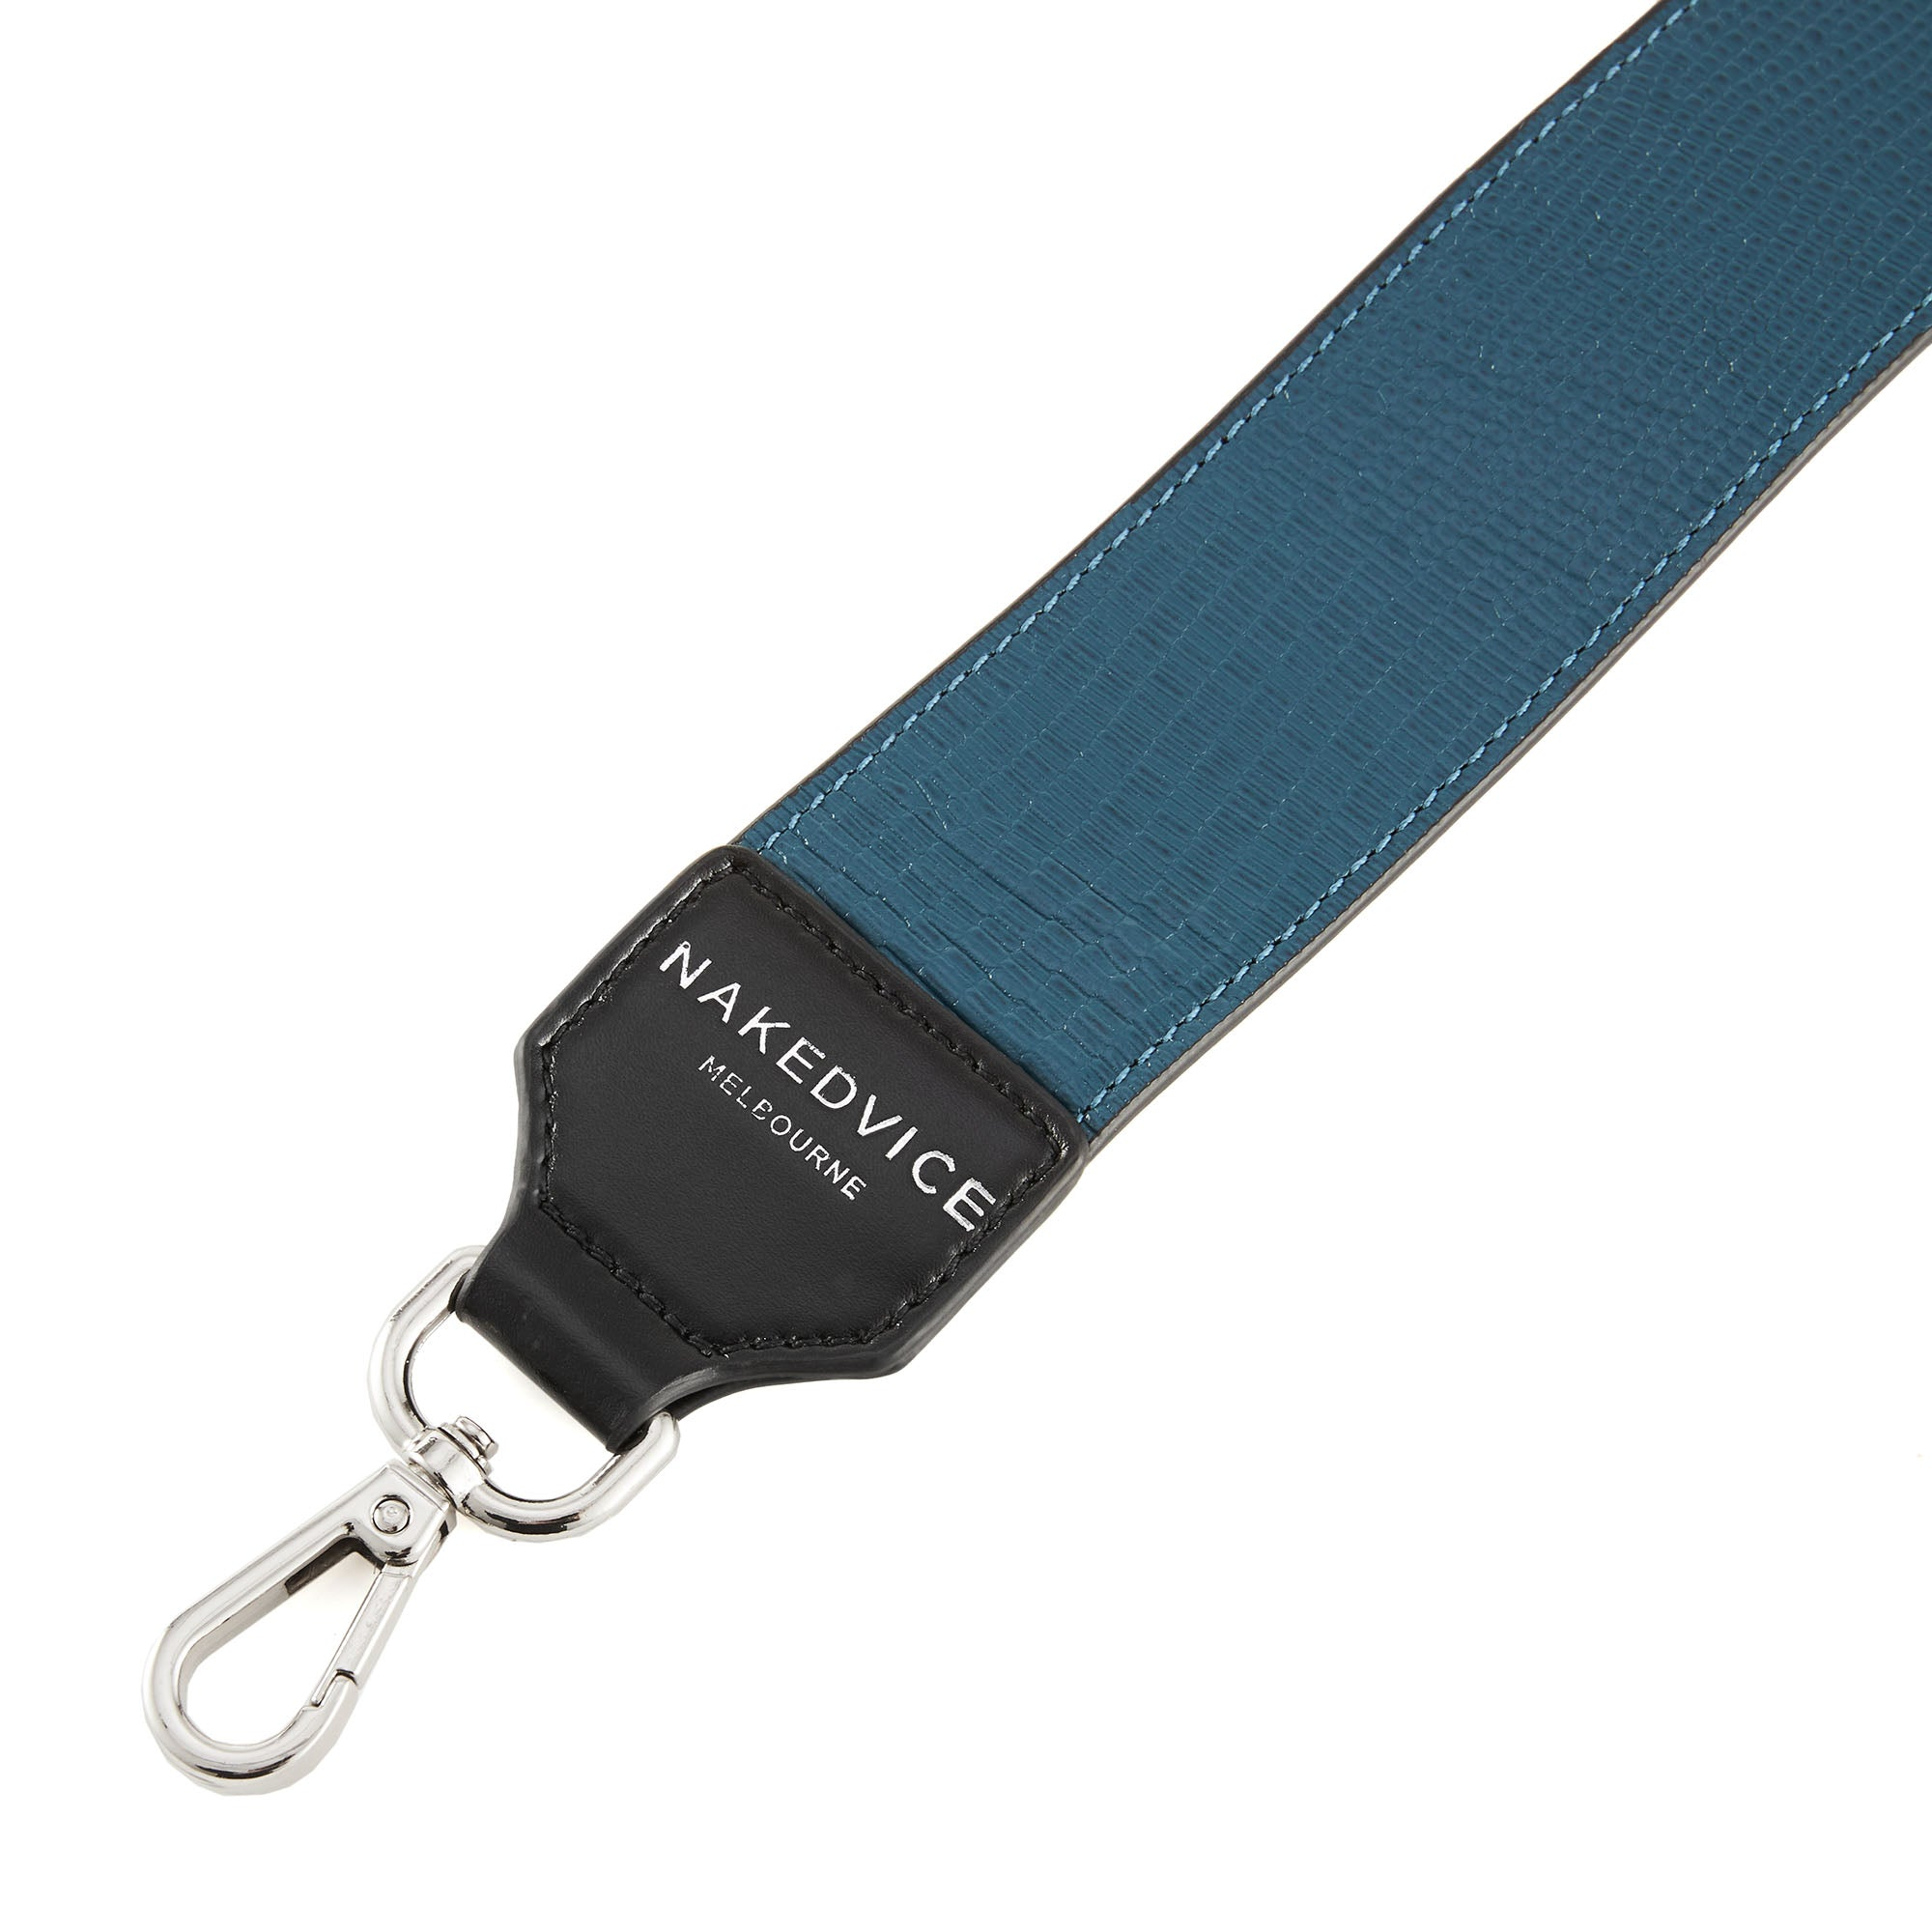 THE TEAL STRAP